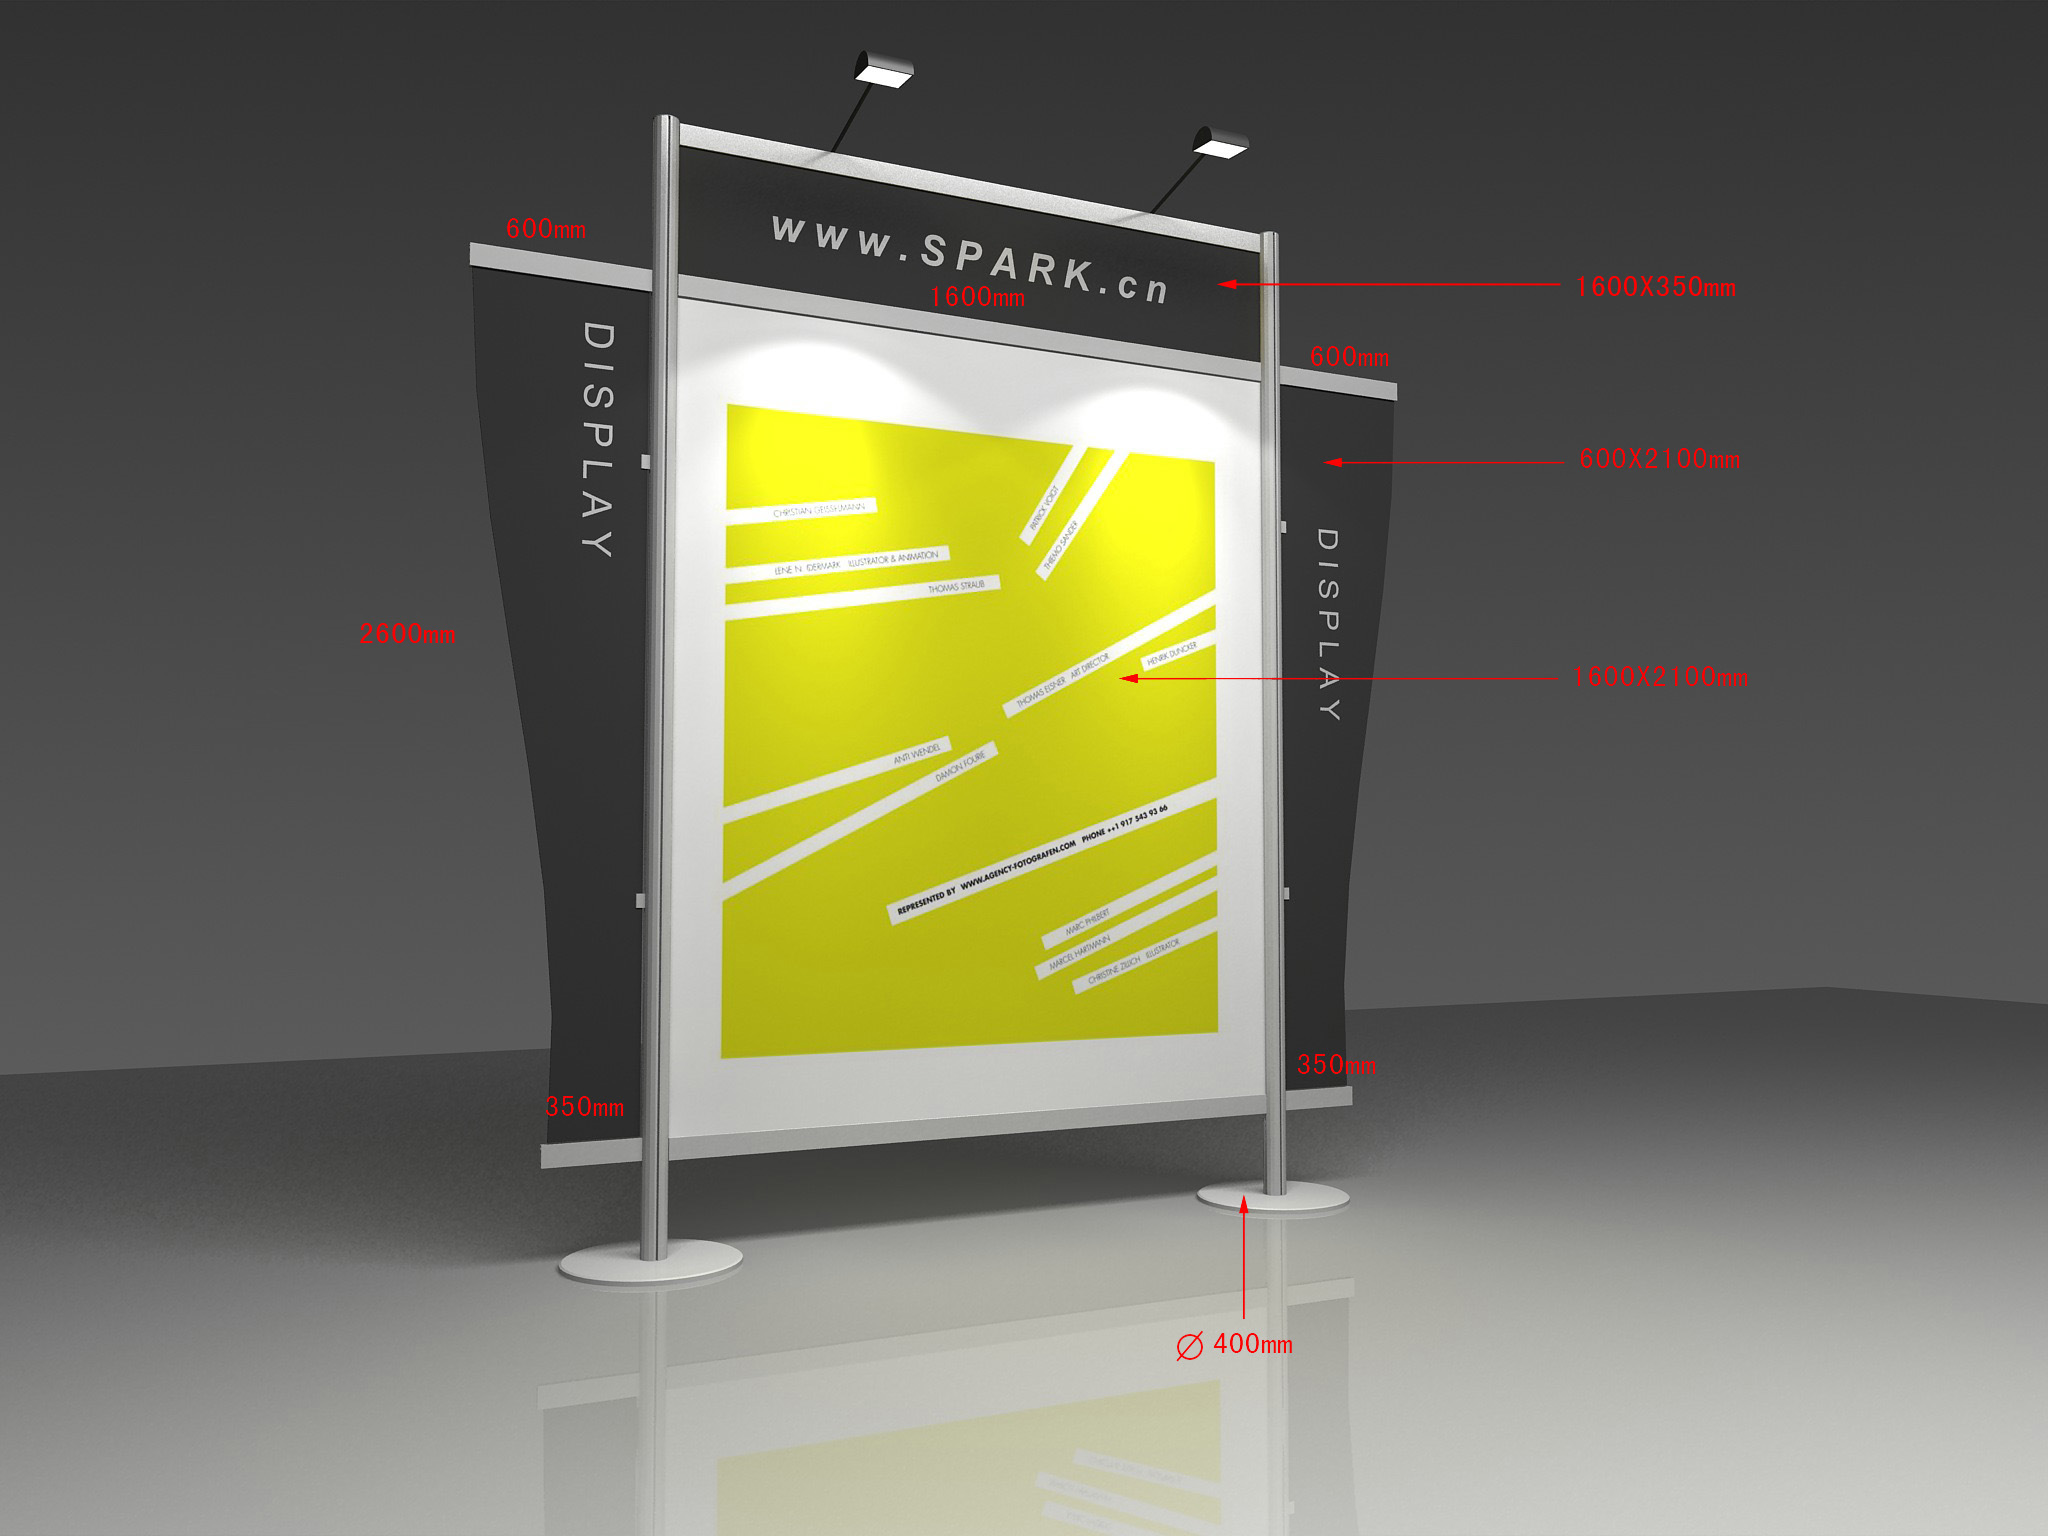 Exhibition Booth Backdrop : China aluminum 10 feet exhibition booth banner backdrop stand